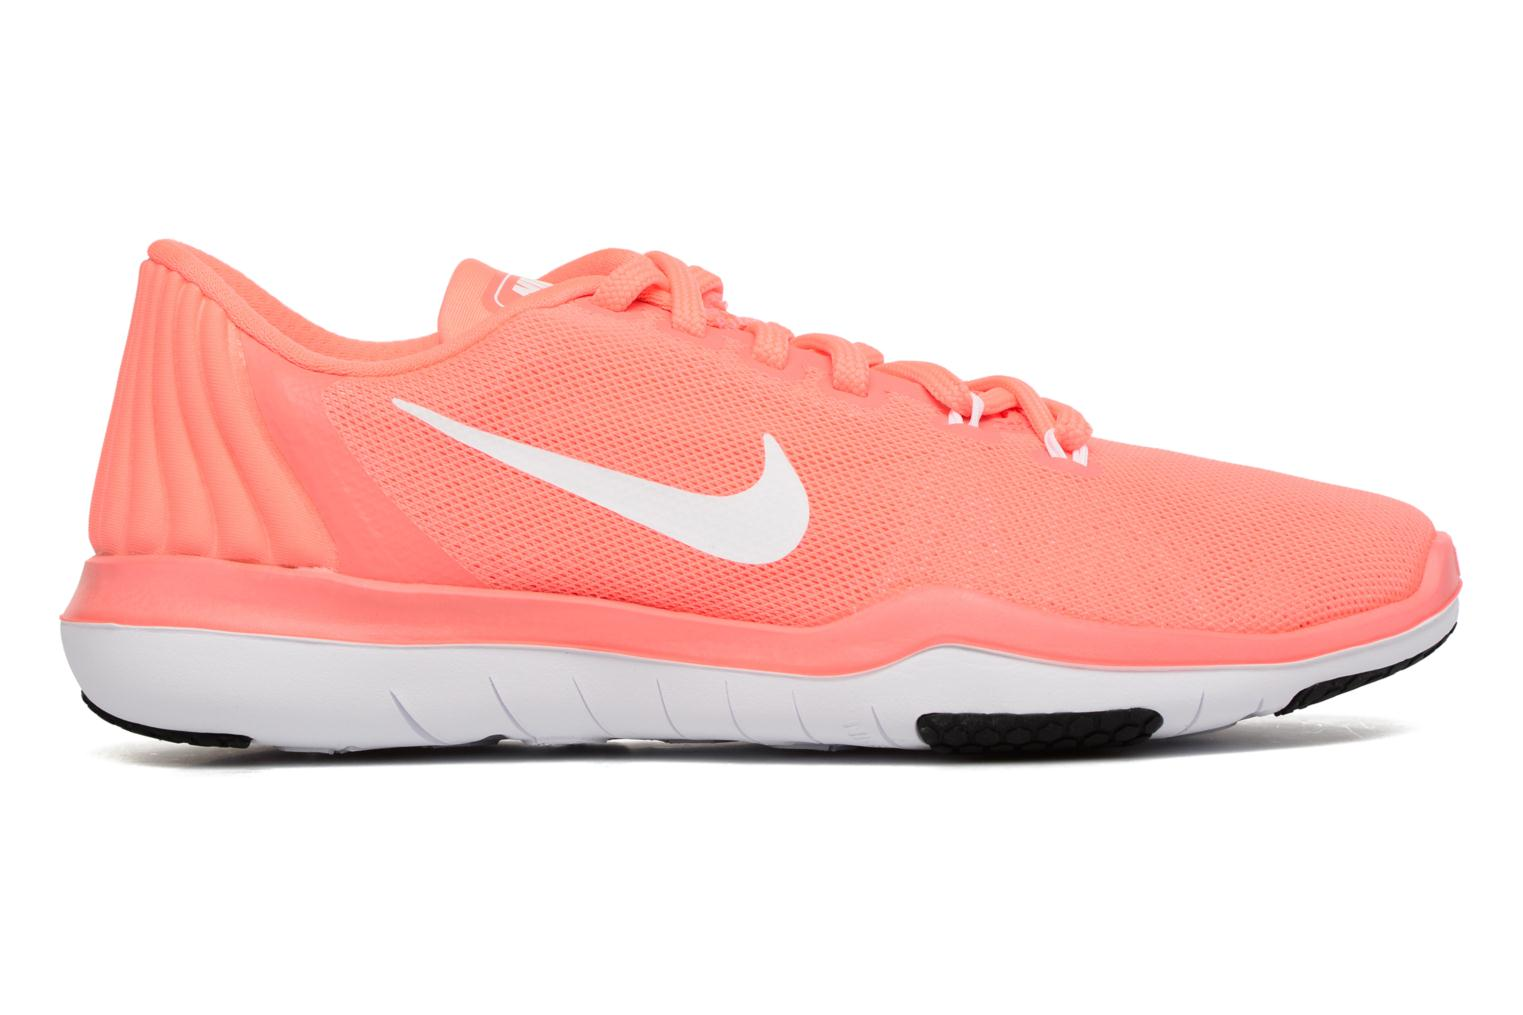 Wmns Nike Flex Supreme Tr 5 Lava Glow/White-University Red-Black